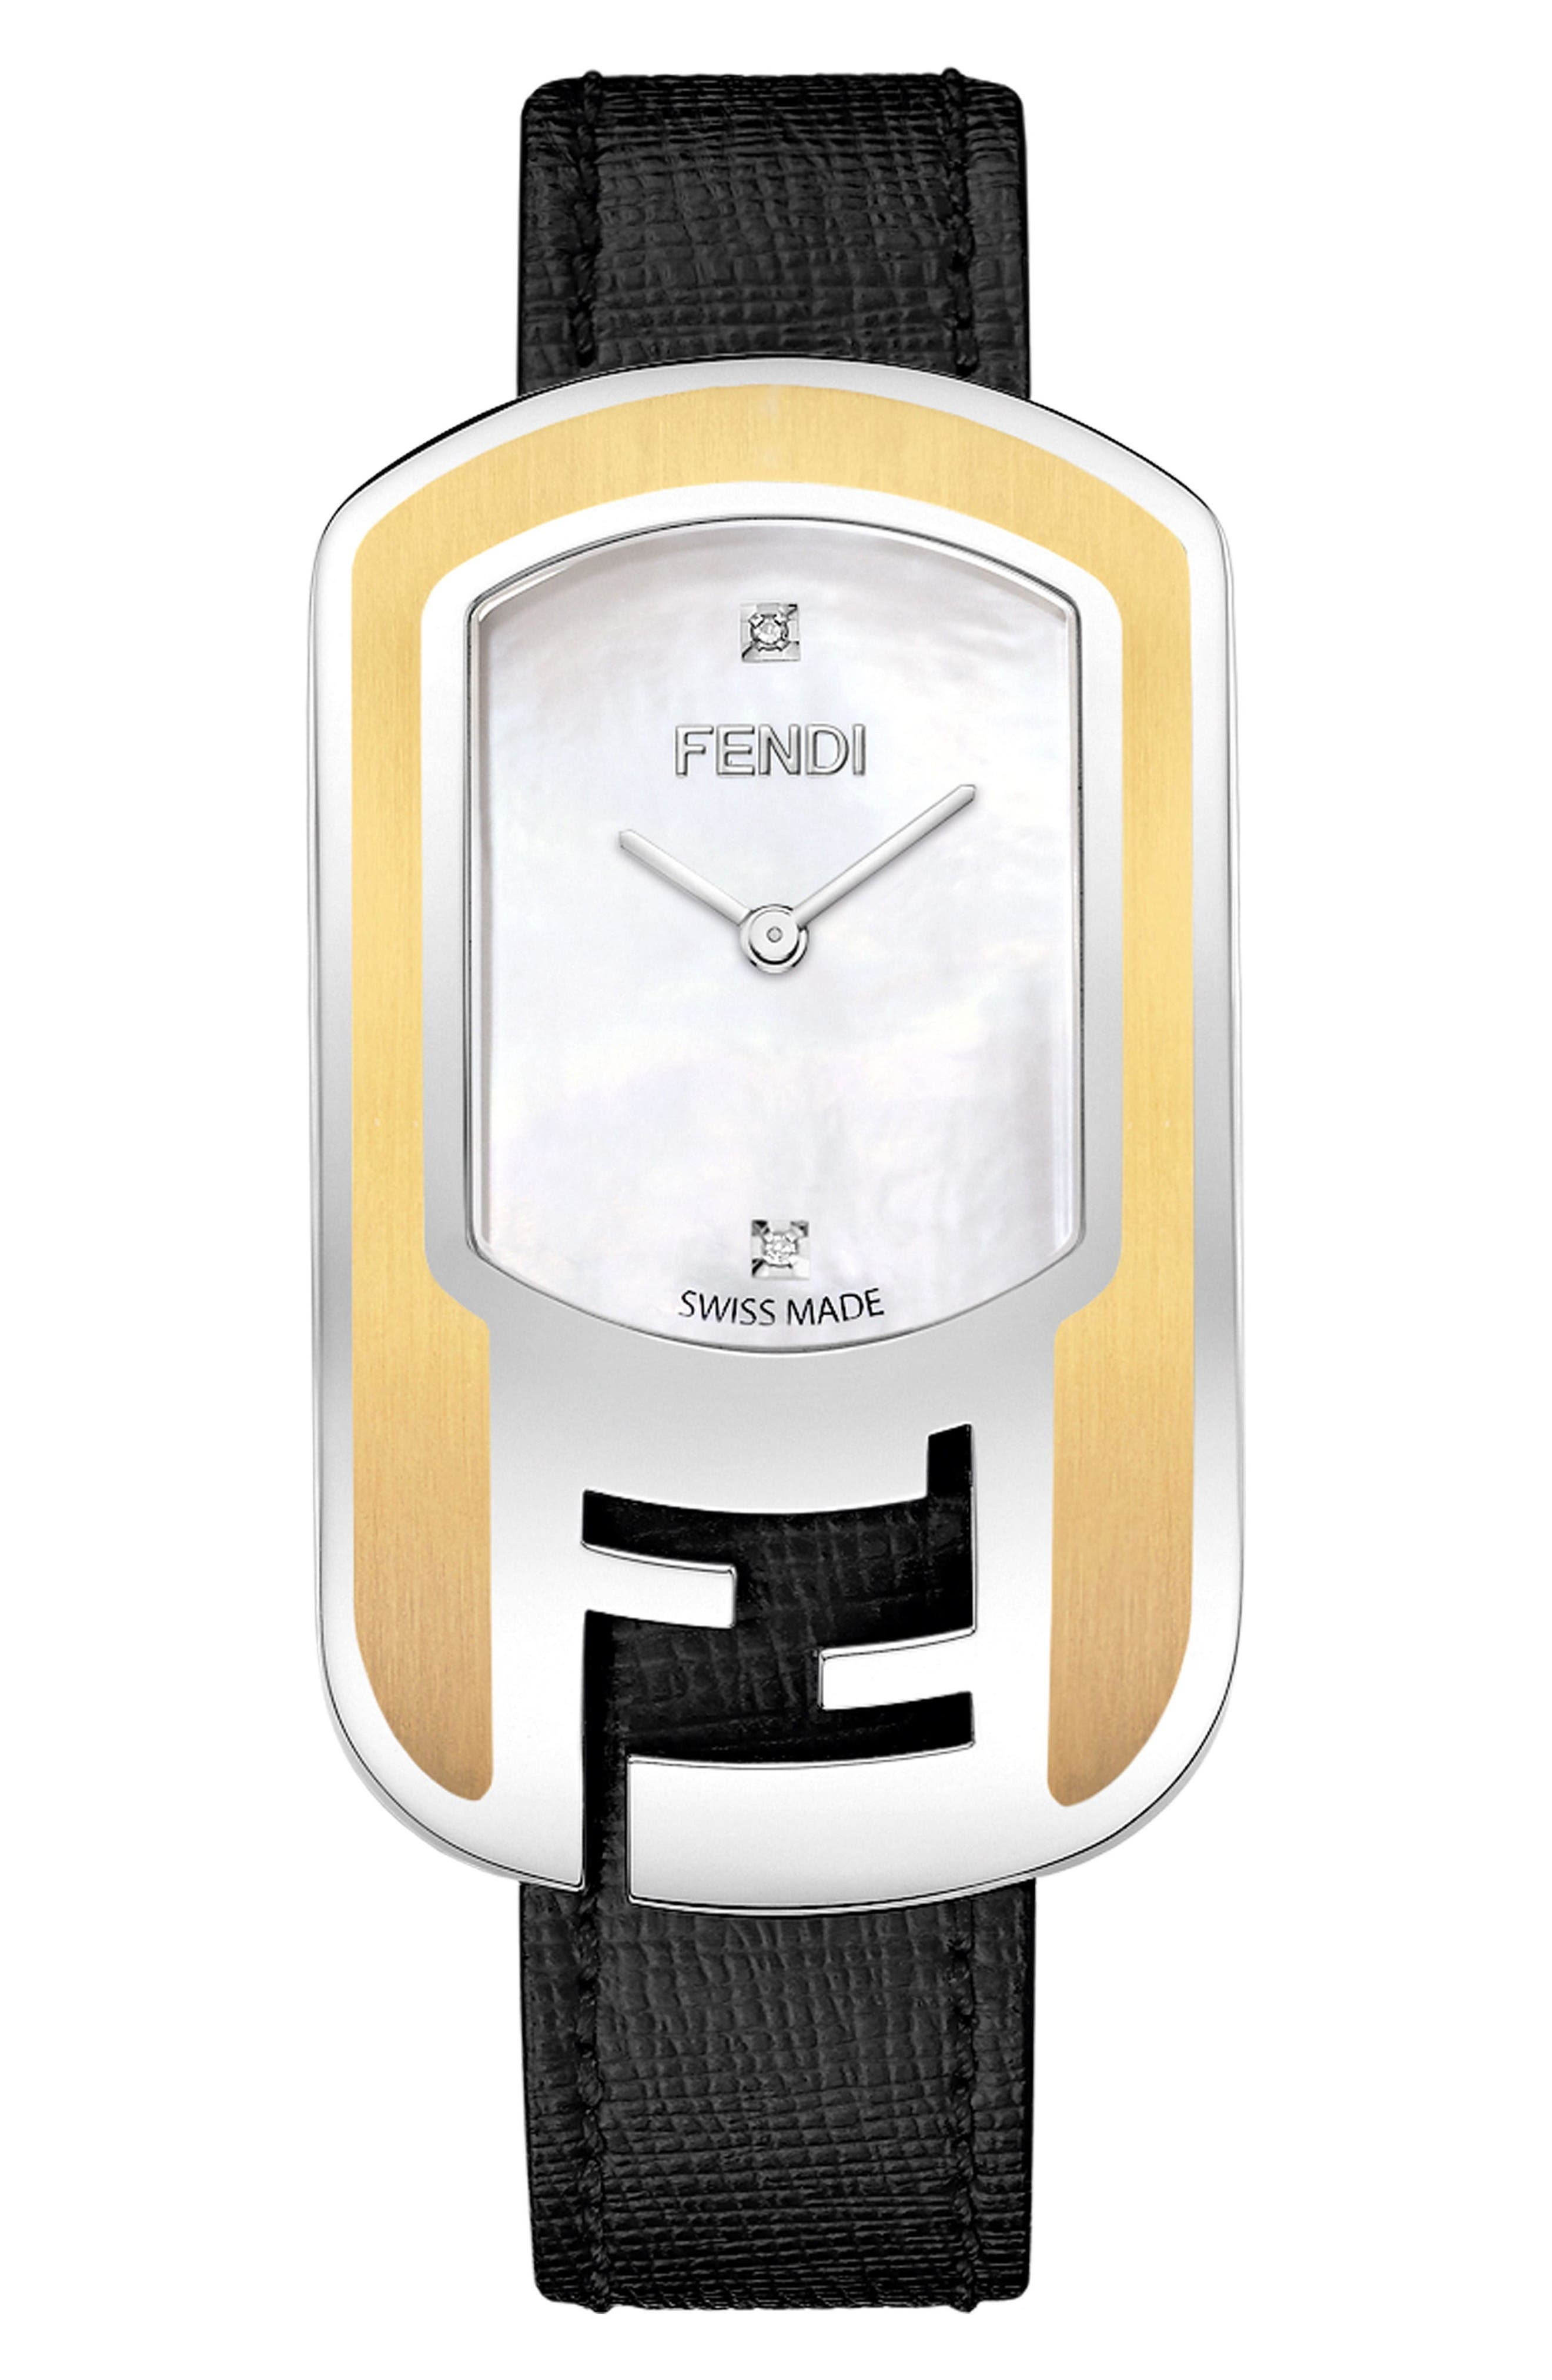 Fendi Chameleon Leather Strap Watch, 29mm x 49mm